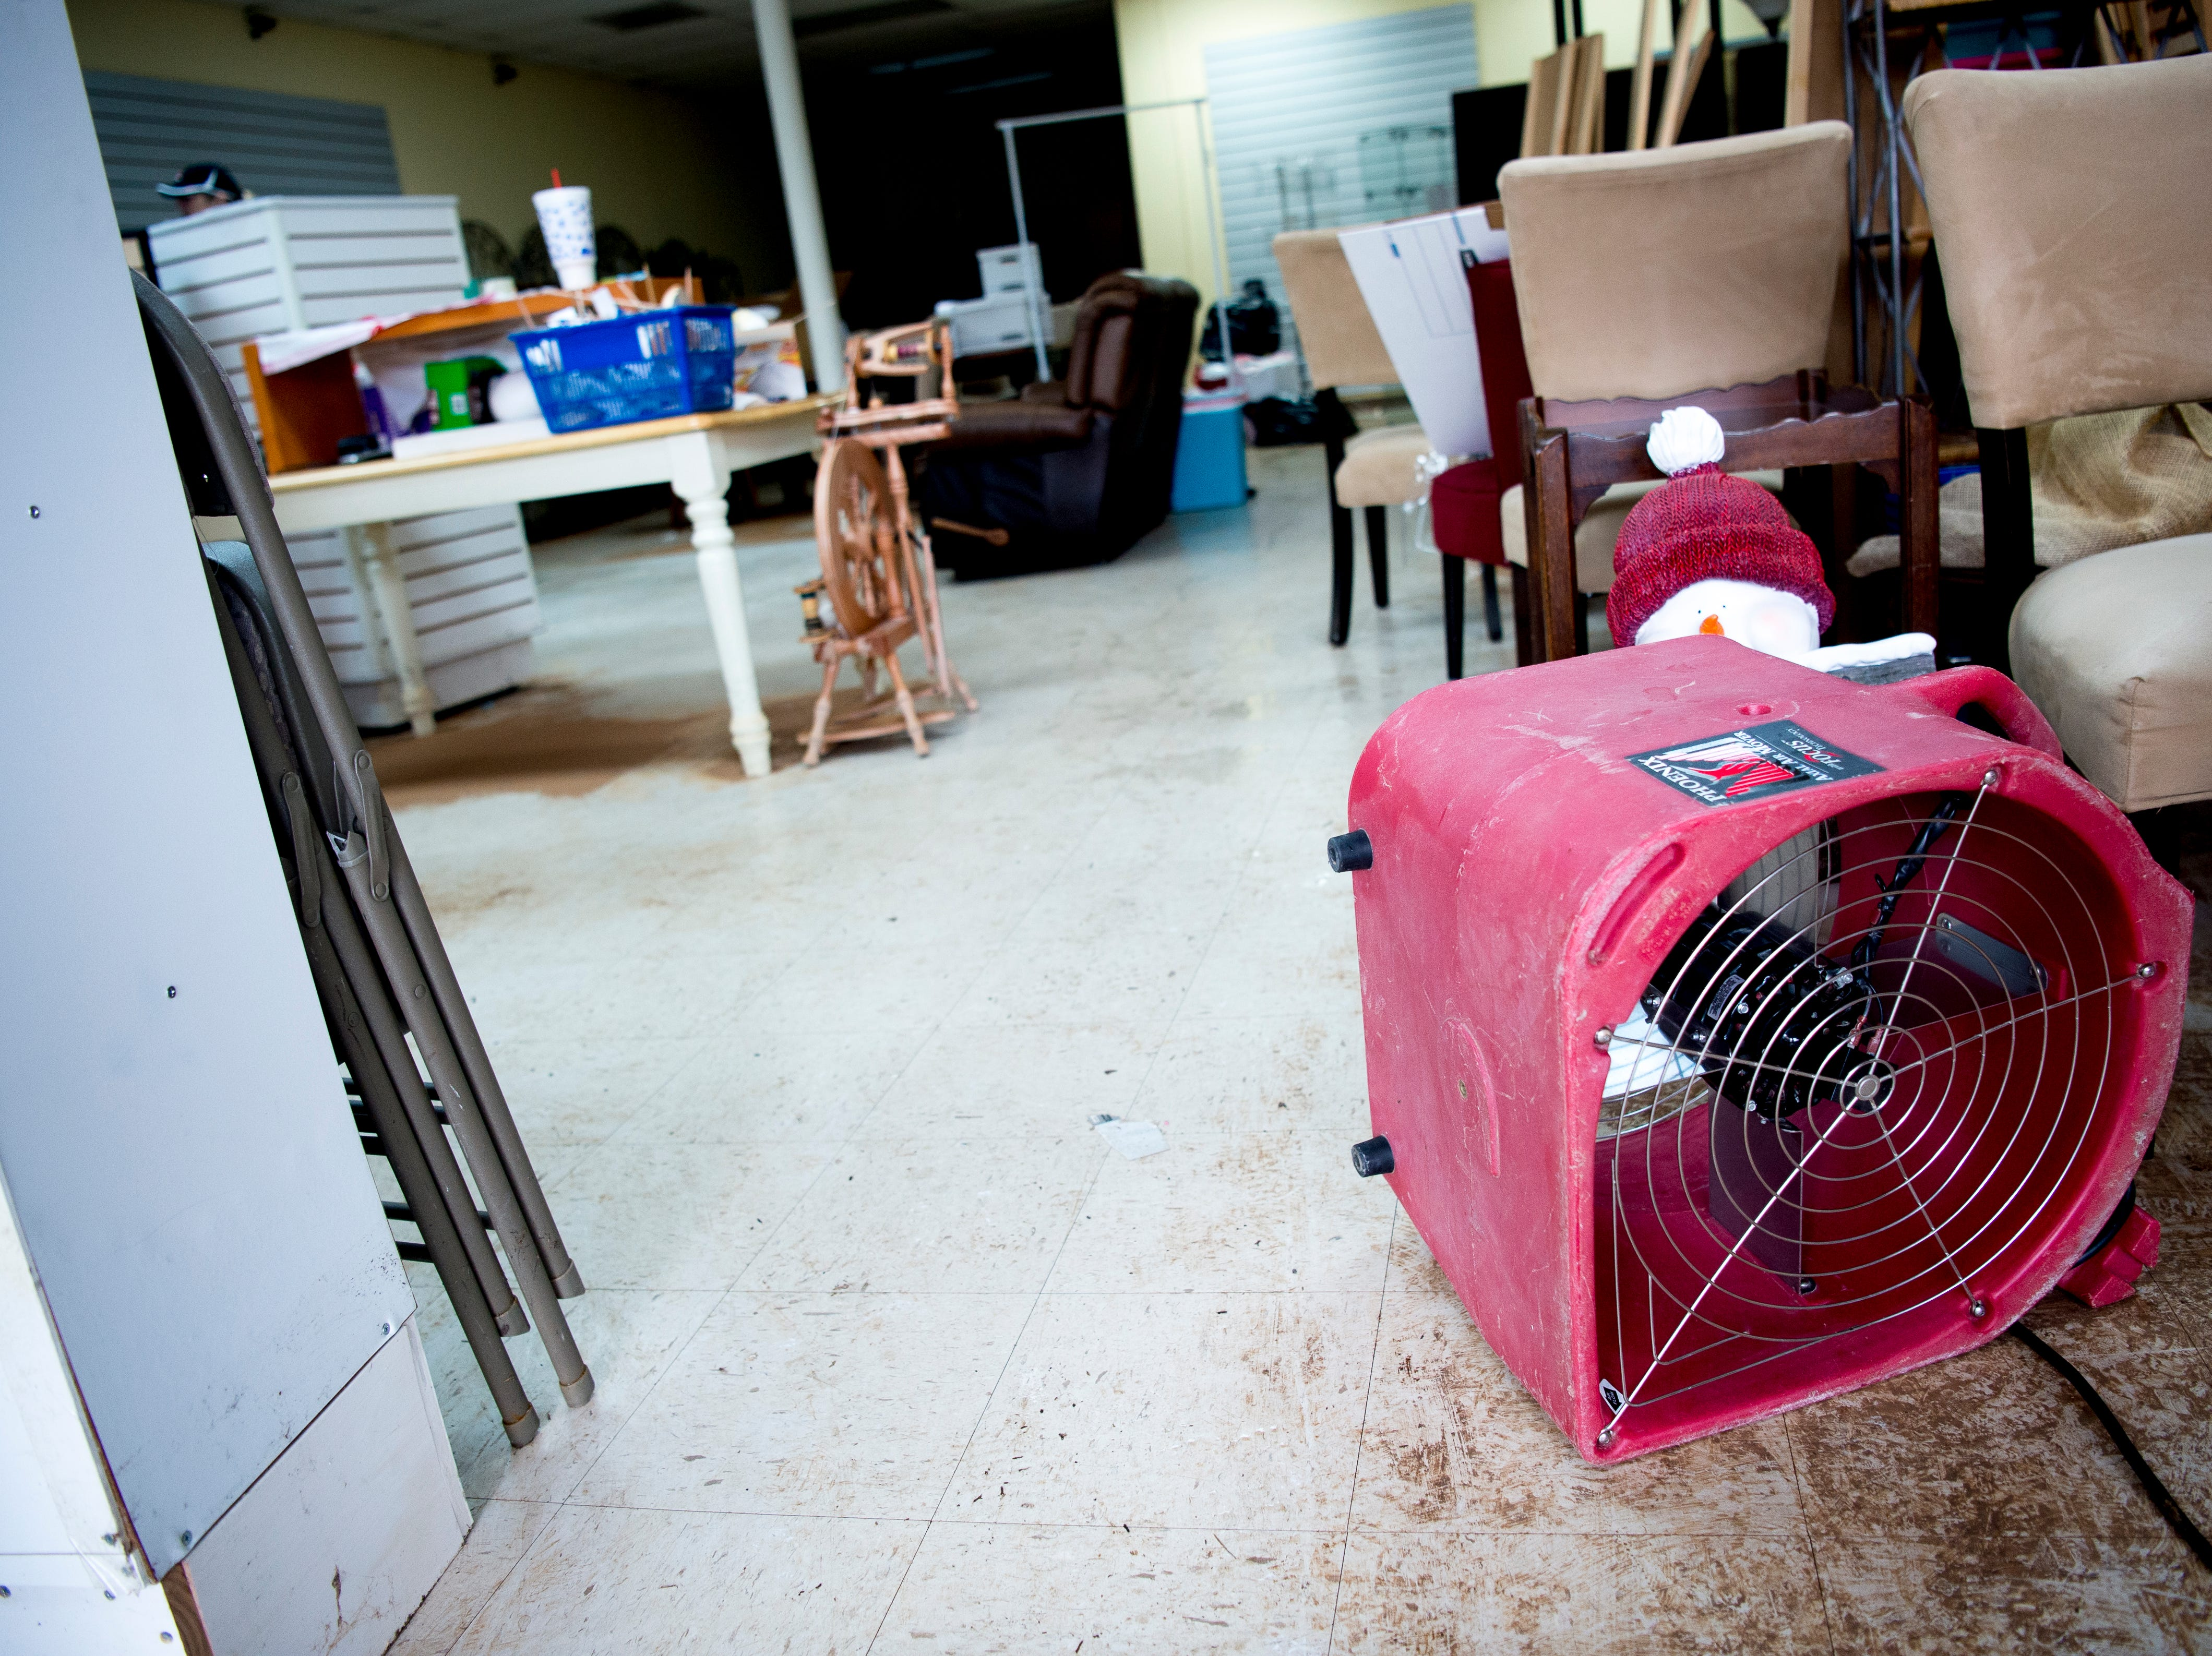 A fan blows damp air from The Yarn Haven at 464 Cedar Bluff Road in Knoxville, Tennessee on Friday, March 1, 2019. Nearly a quarter of the stores inventory including furniture and paperwork was lost in the floodwaters, which reached over a foot in depth. The owners estimate it will take them a minimum of two months until they can open up shop again.